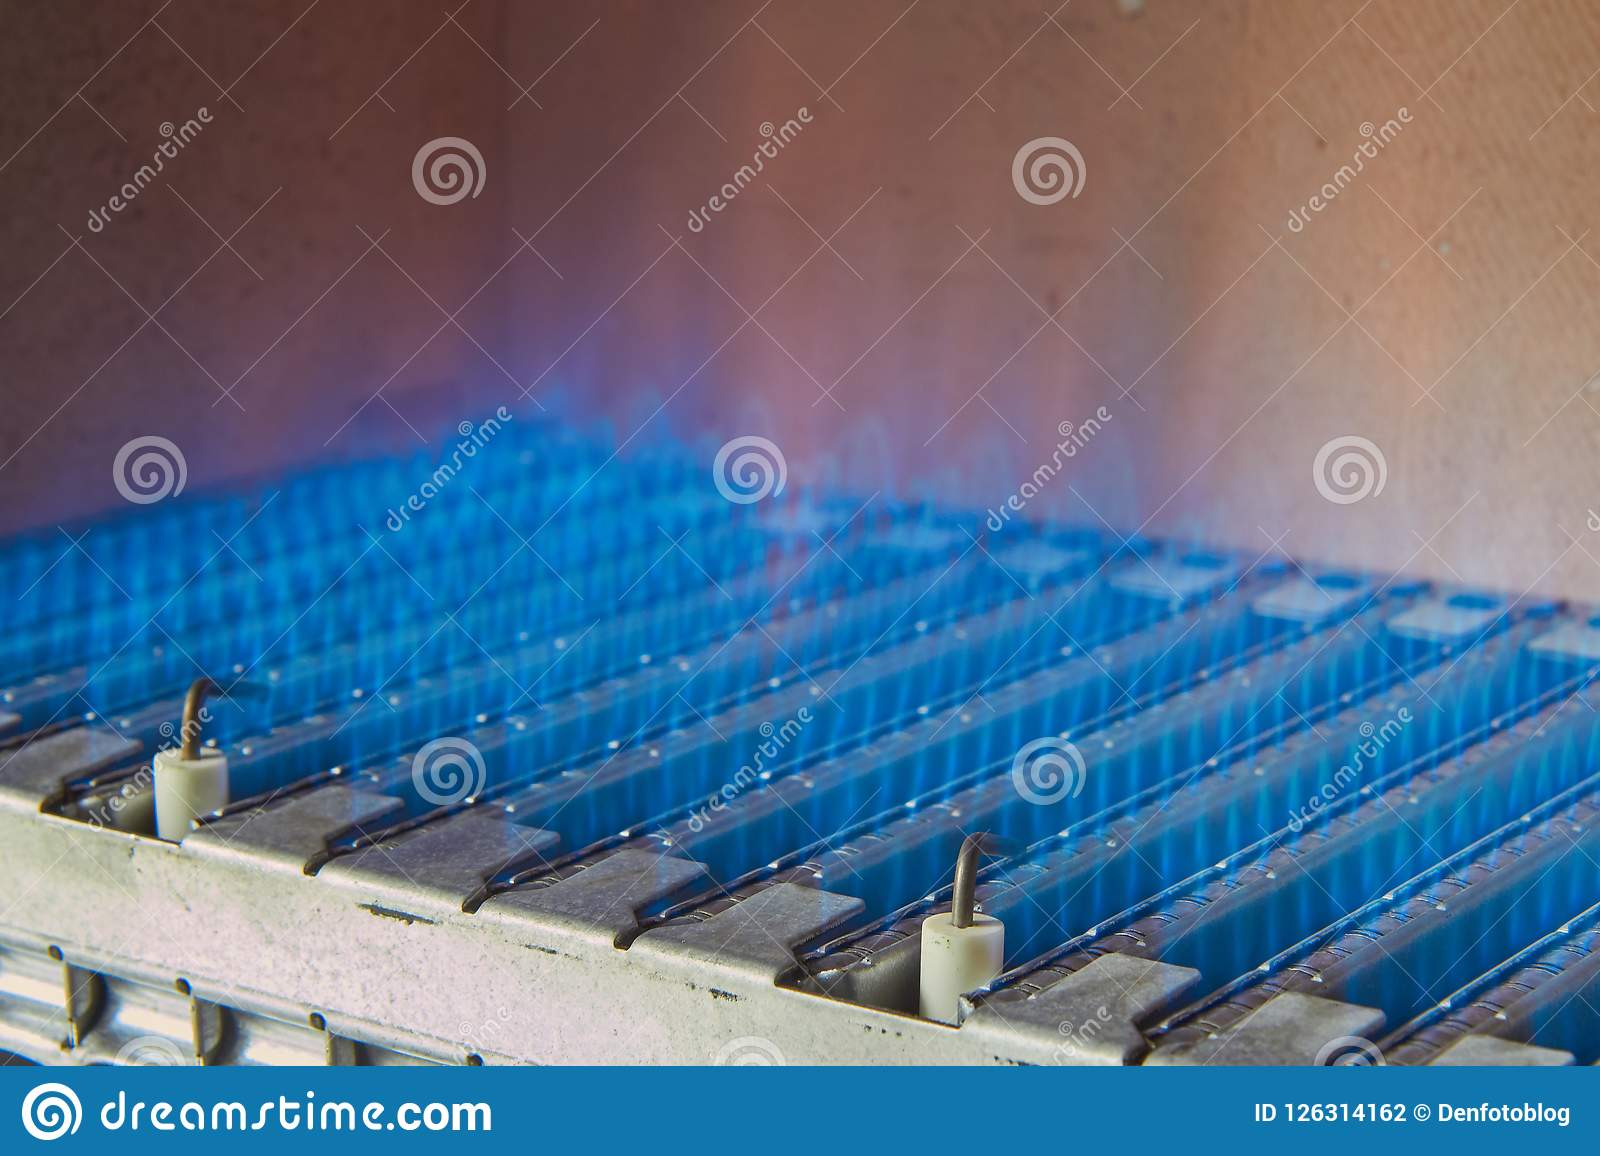 The Device Of A Gas Boiler, The Process Of Heating Water. Stock ...